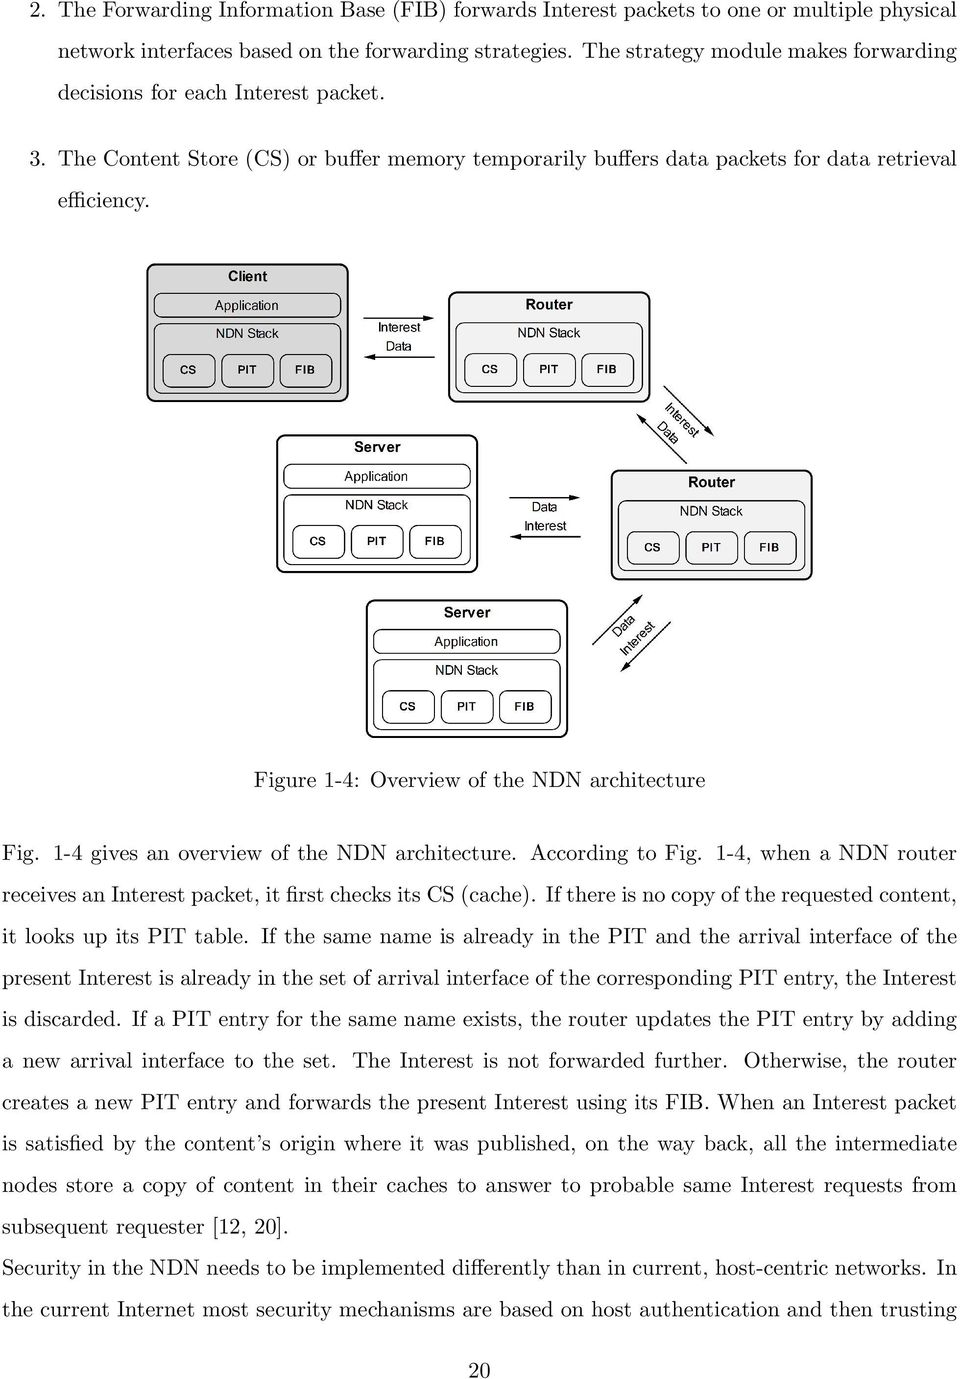 Figure 1-4: Overview of the NDN architecture Fig. 1-4 gives an overview of the NDN architecture. According to Fig. 1-4, when a NDN router receives an Interest packet, it first checks its CS (cache).